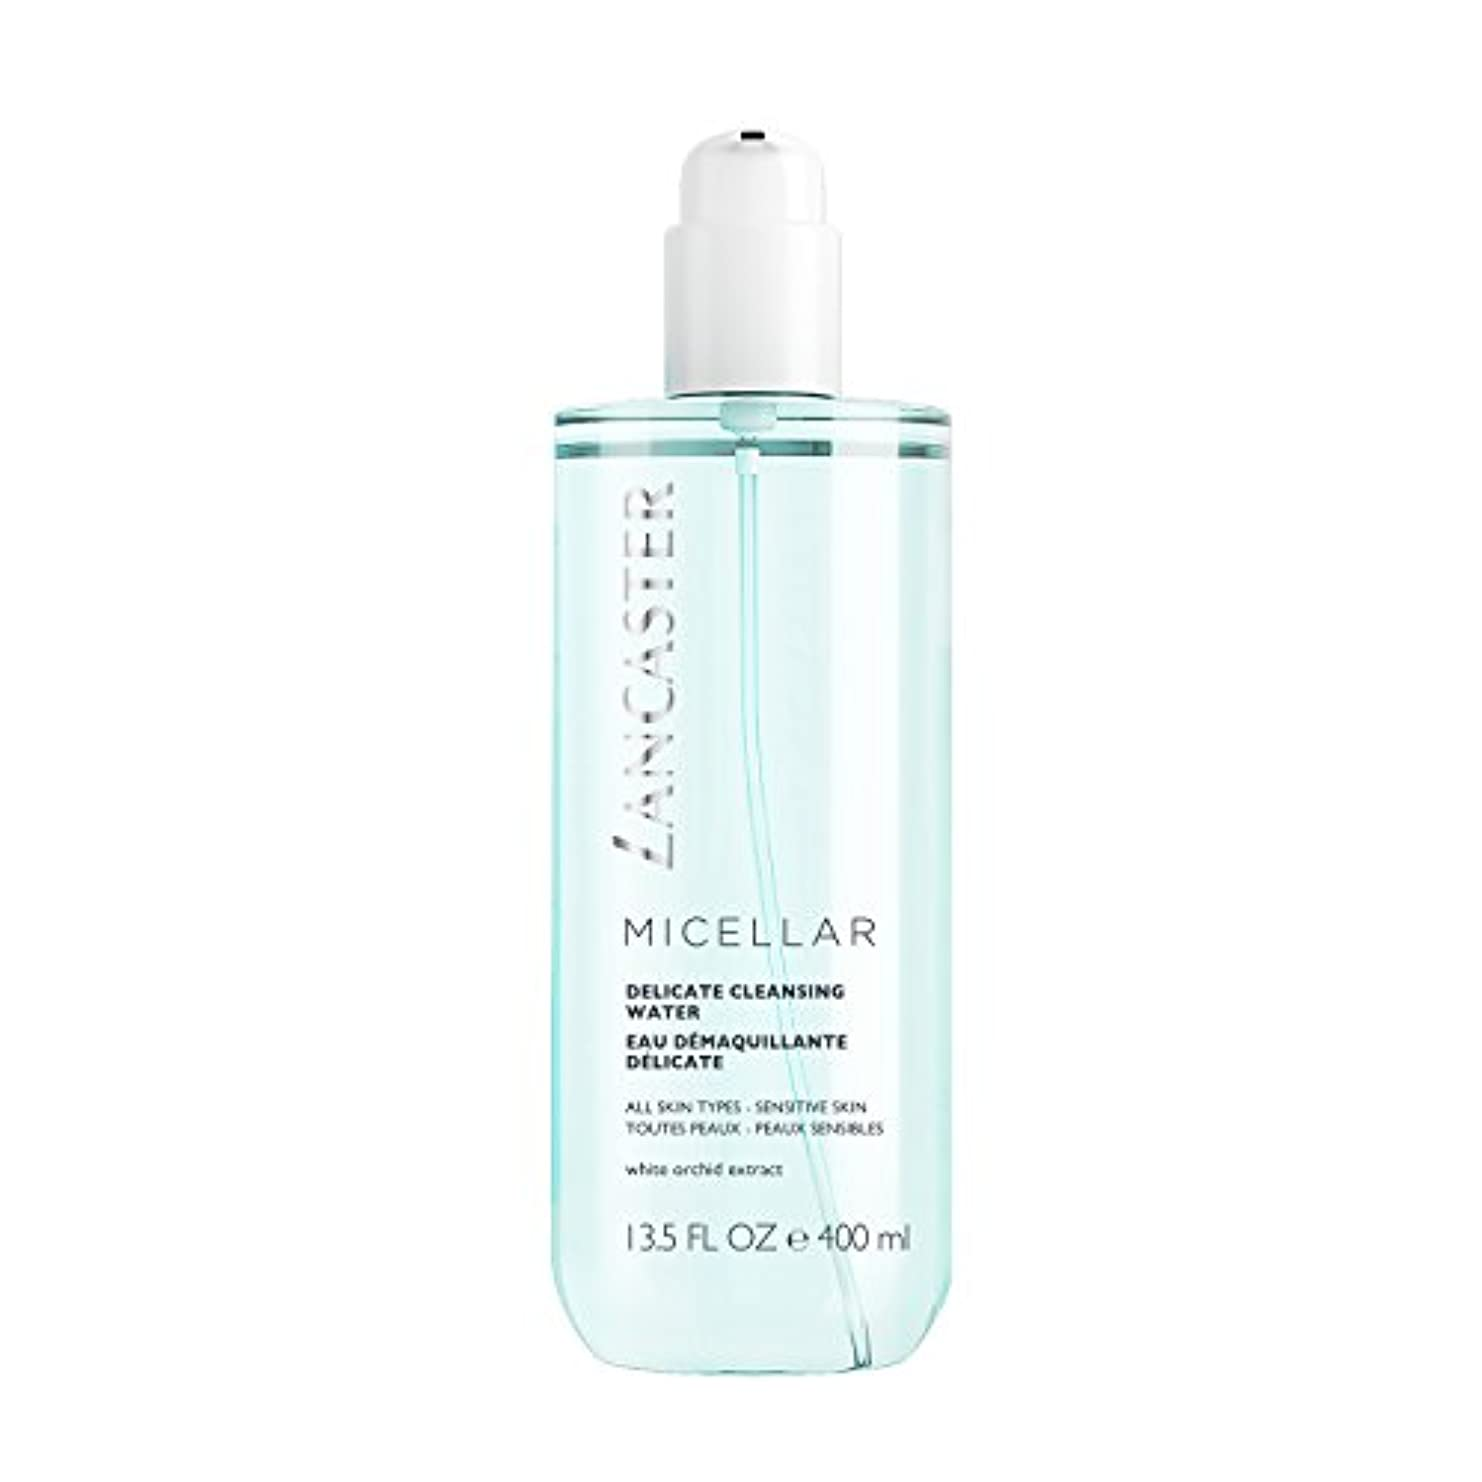 否認する欲しいですもう一度ランカスター Micellar Delicate Cleansing Water - All Skin Types, Including Sensitive Skin 400ml/13.5oz並行輸入品